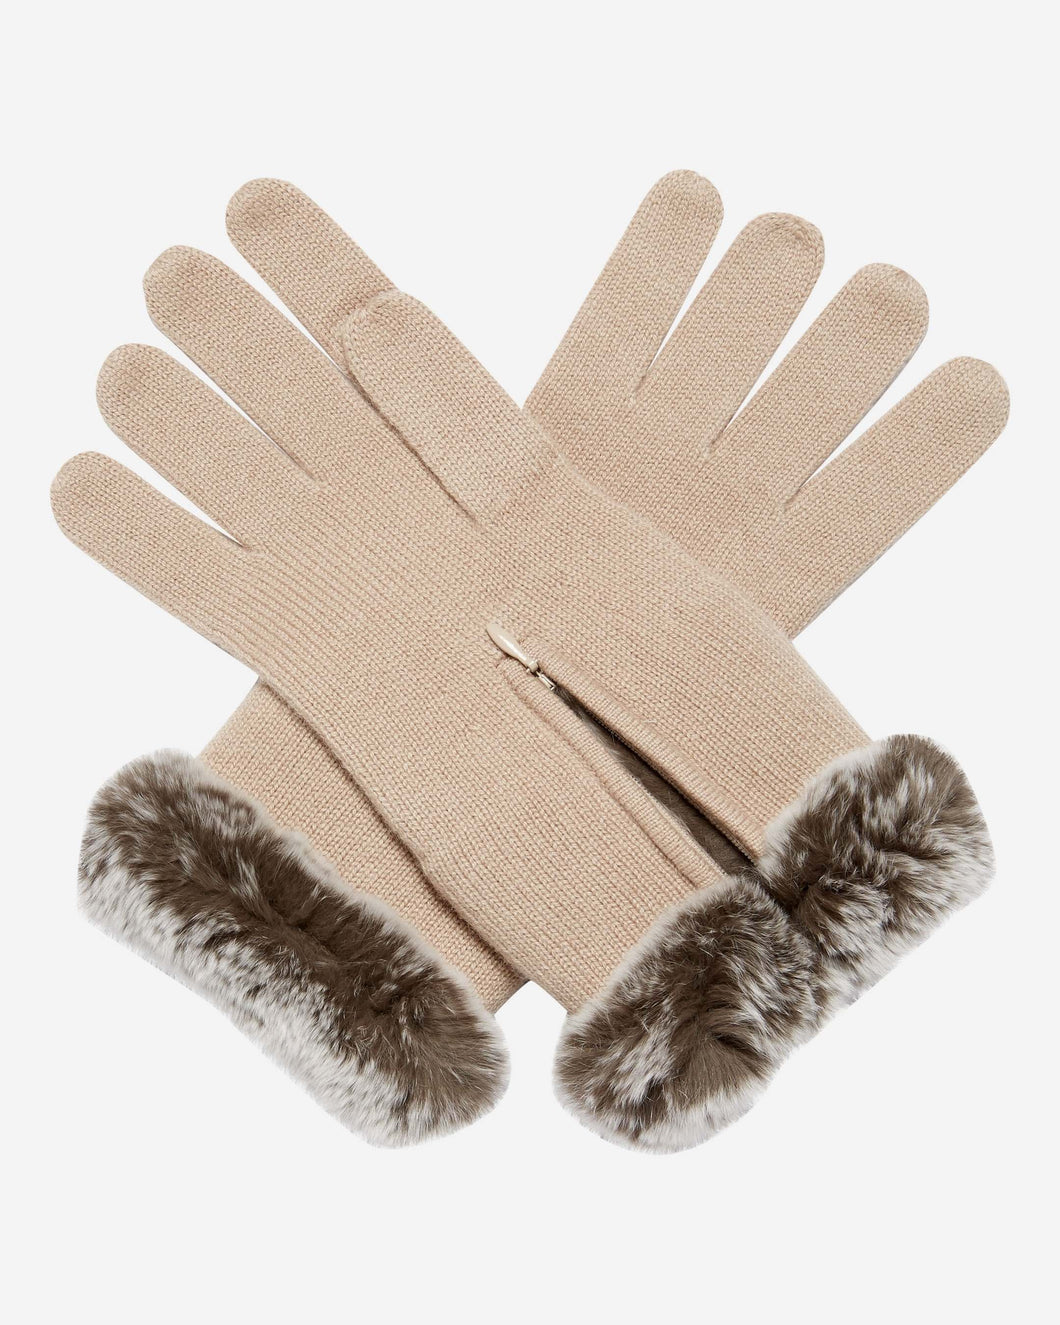 Fur And Cashmere Gloves Fawn Brown + Sable Brown Tipped Fur